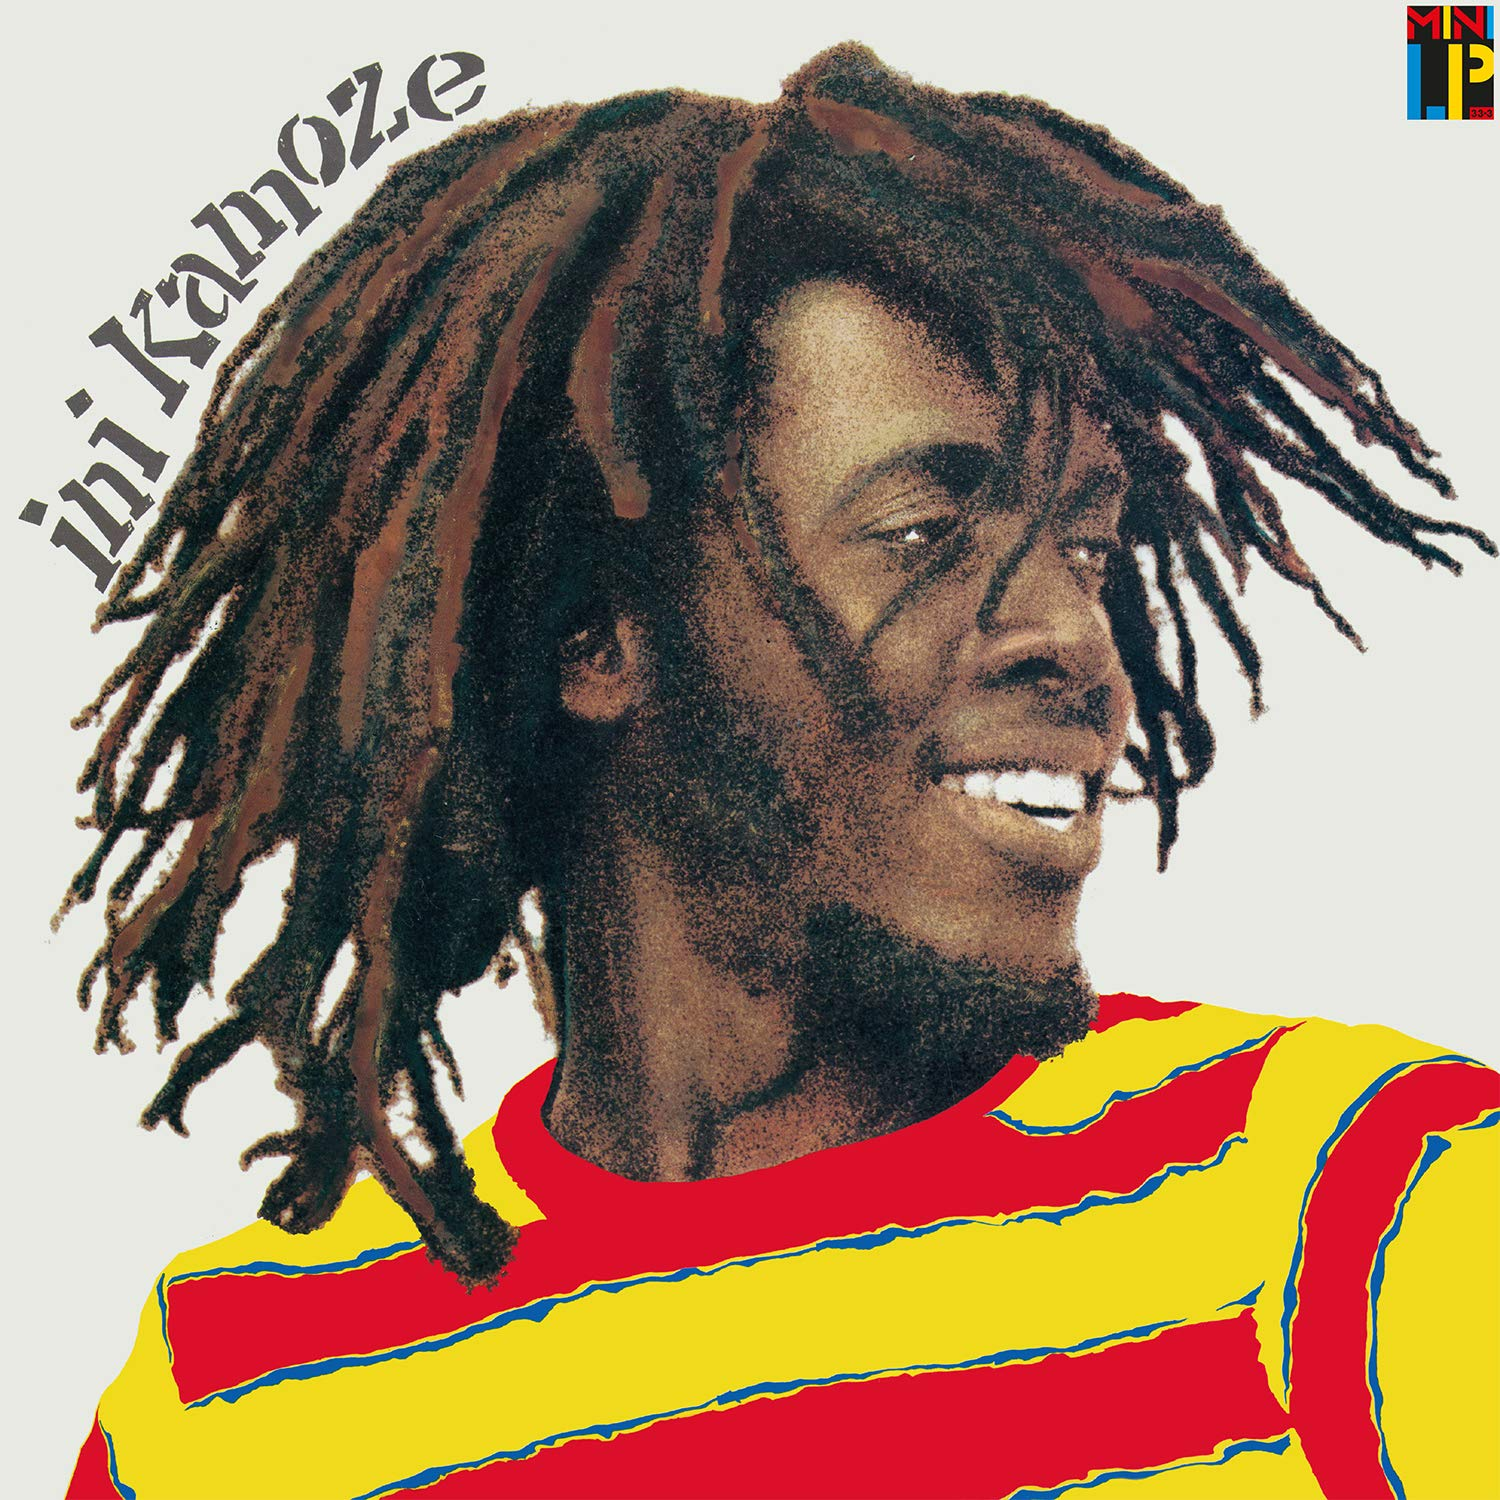 Ini Kamoze - Ini Kamoze [LP] (180 Gram Audiophile Vinyl, reggae series with selected reggae classics sticker on seal, import)